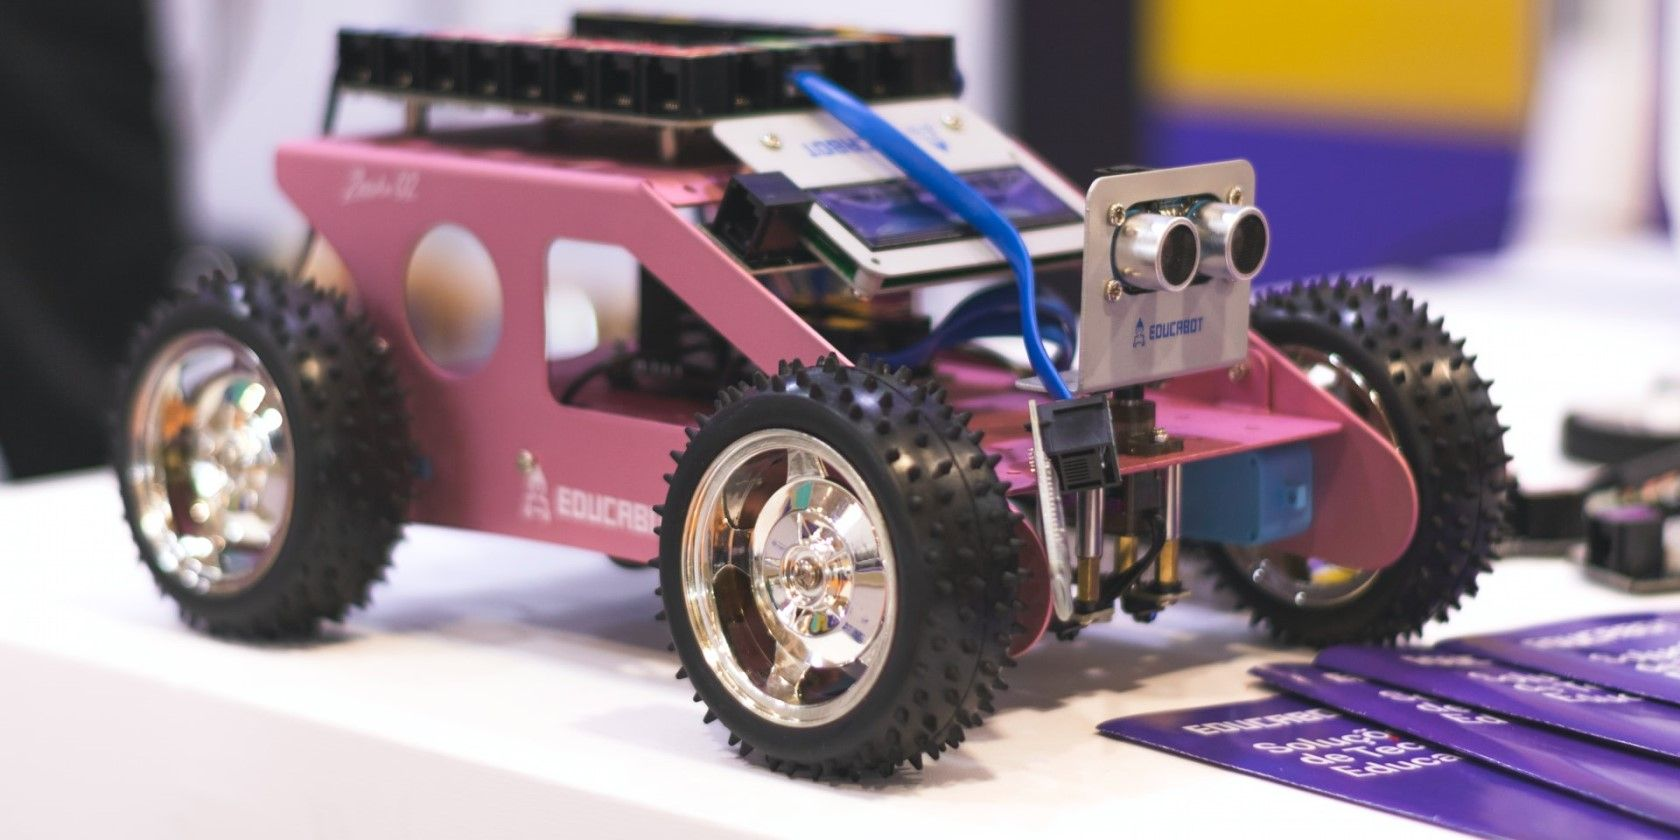 What You Need to Build Your Own Autonomous Robot